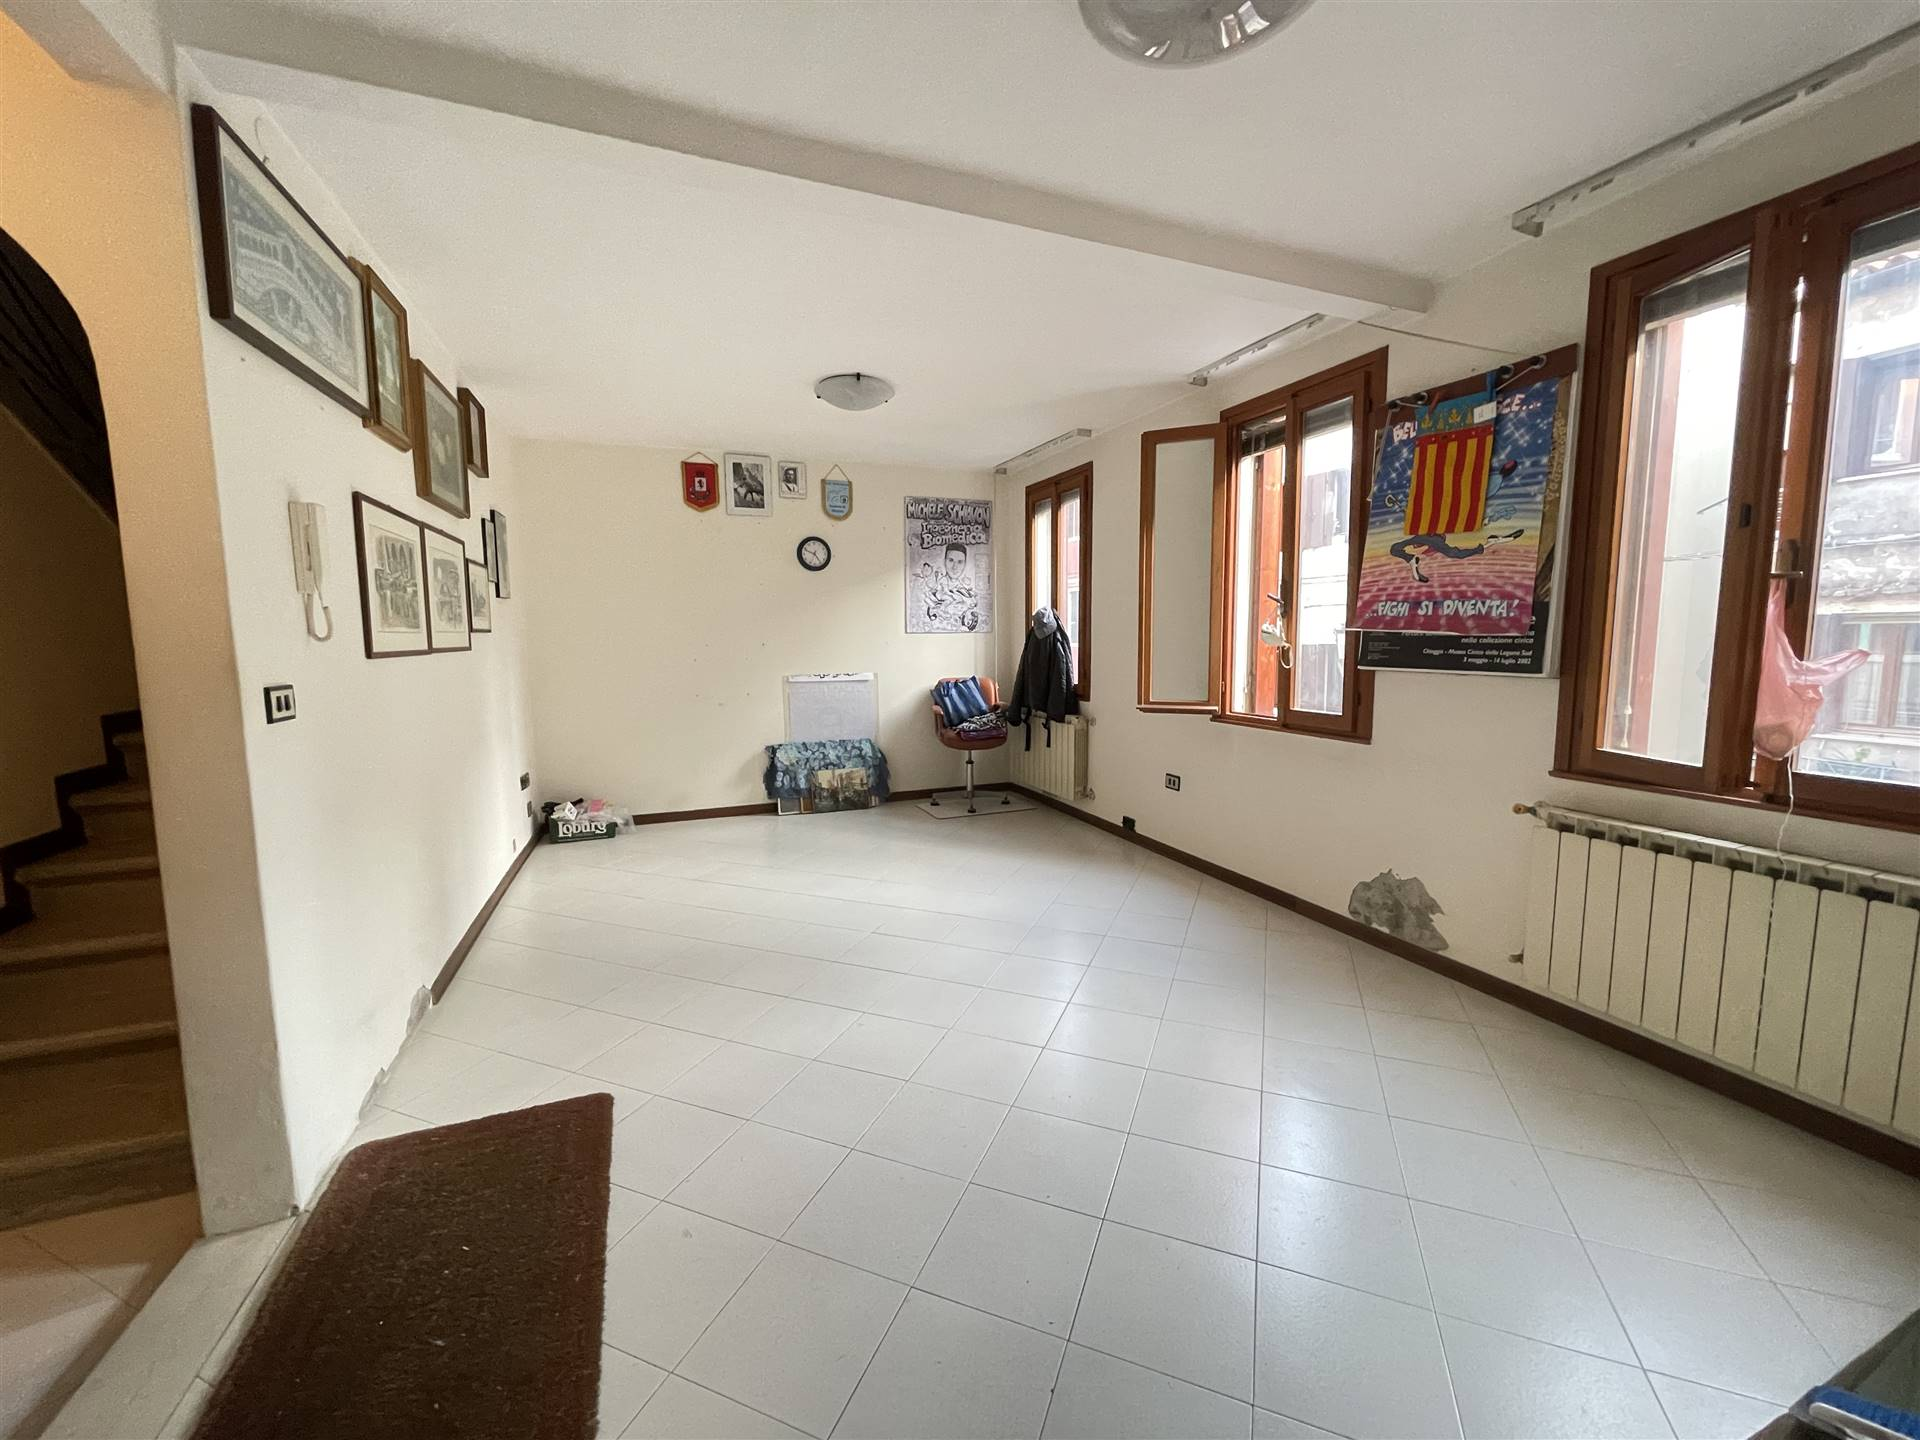 CHIOGGIA CENTRO, CHIOGGIA, Detached house for sale of 130 Sq. mt., Habitable, Heating Individual heating system, Energetic class: G, placed at Ground